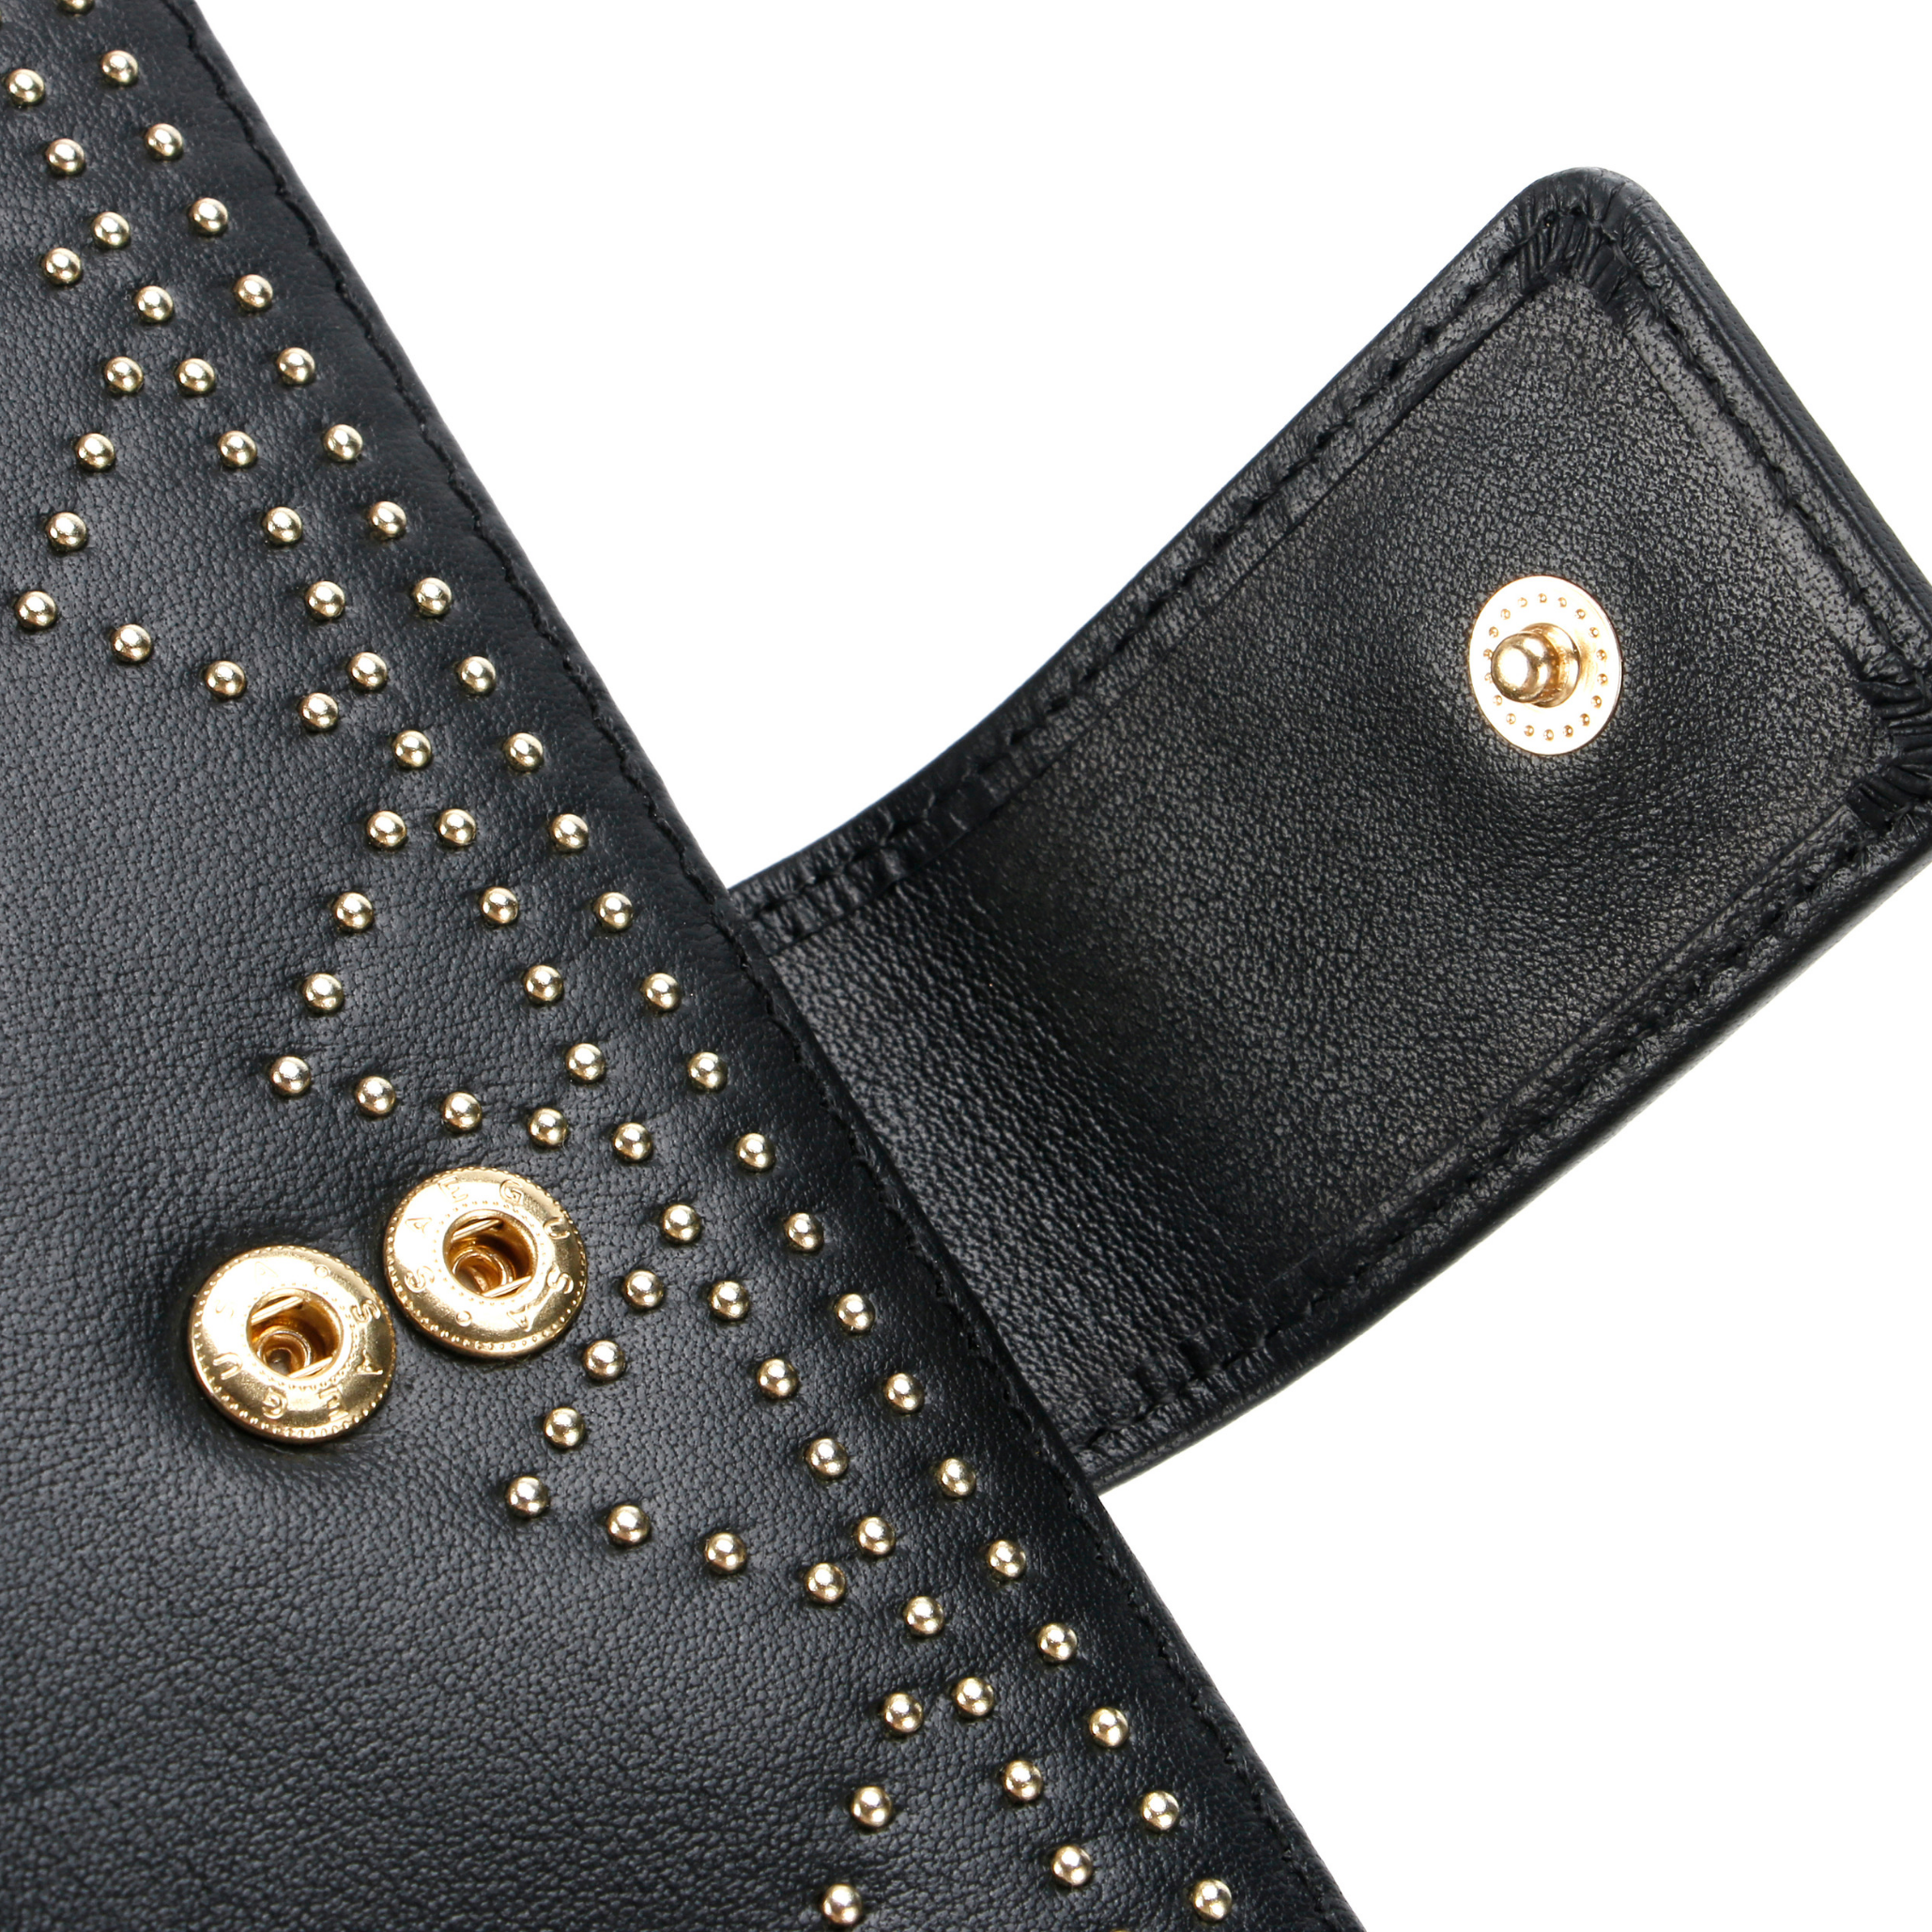 Black studded leather purse, perfect for cards, notes and coins. Image shows safety lock, front view opened.